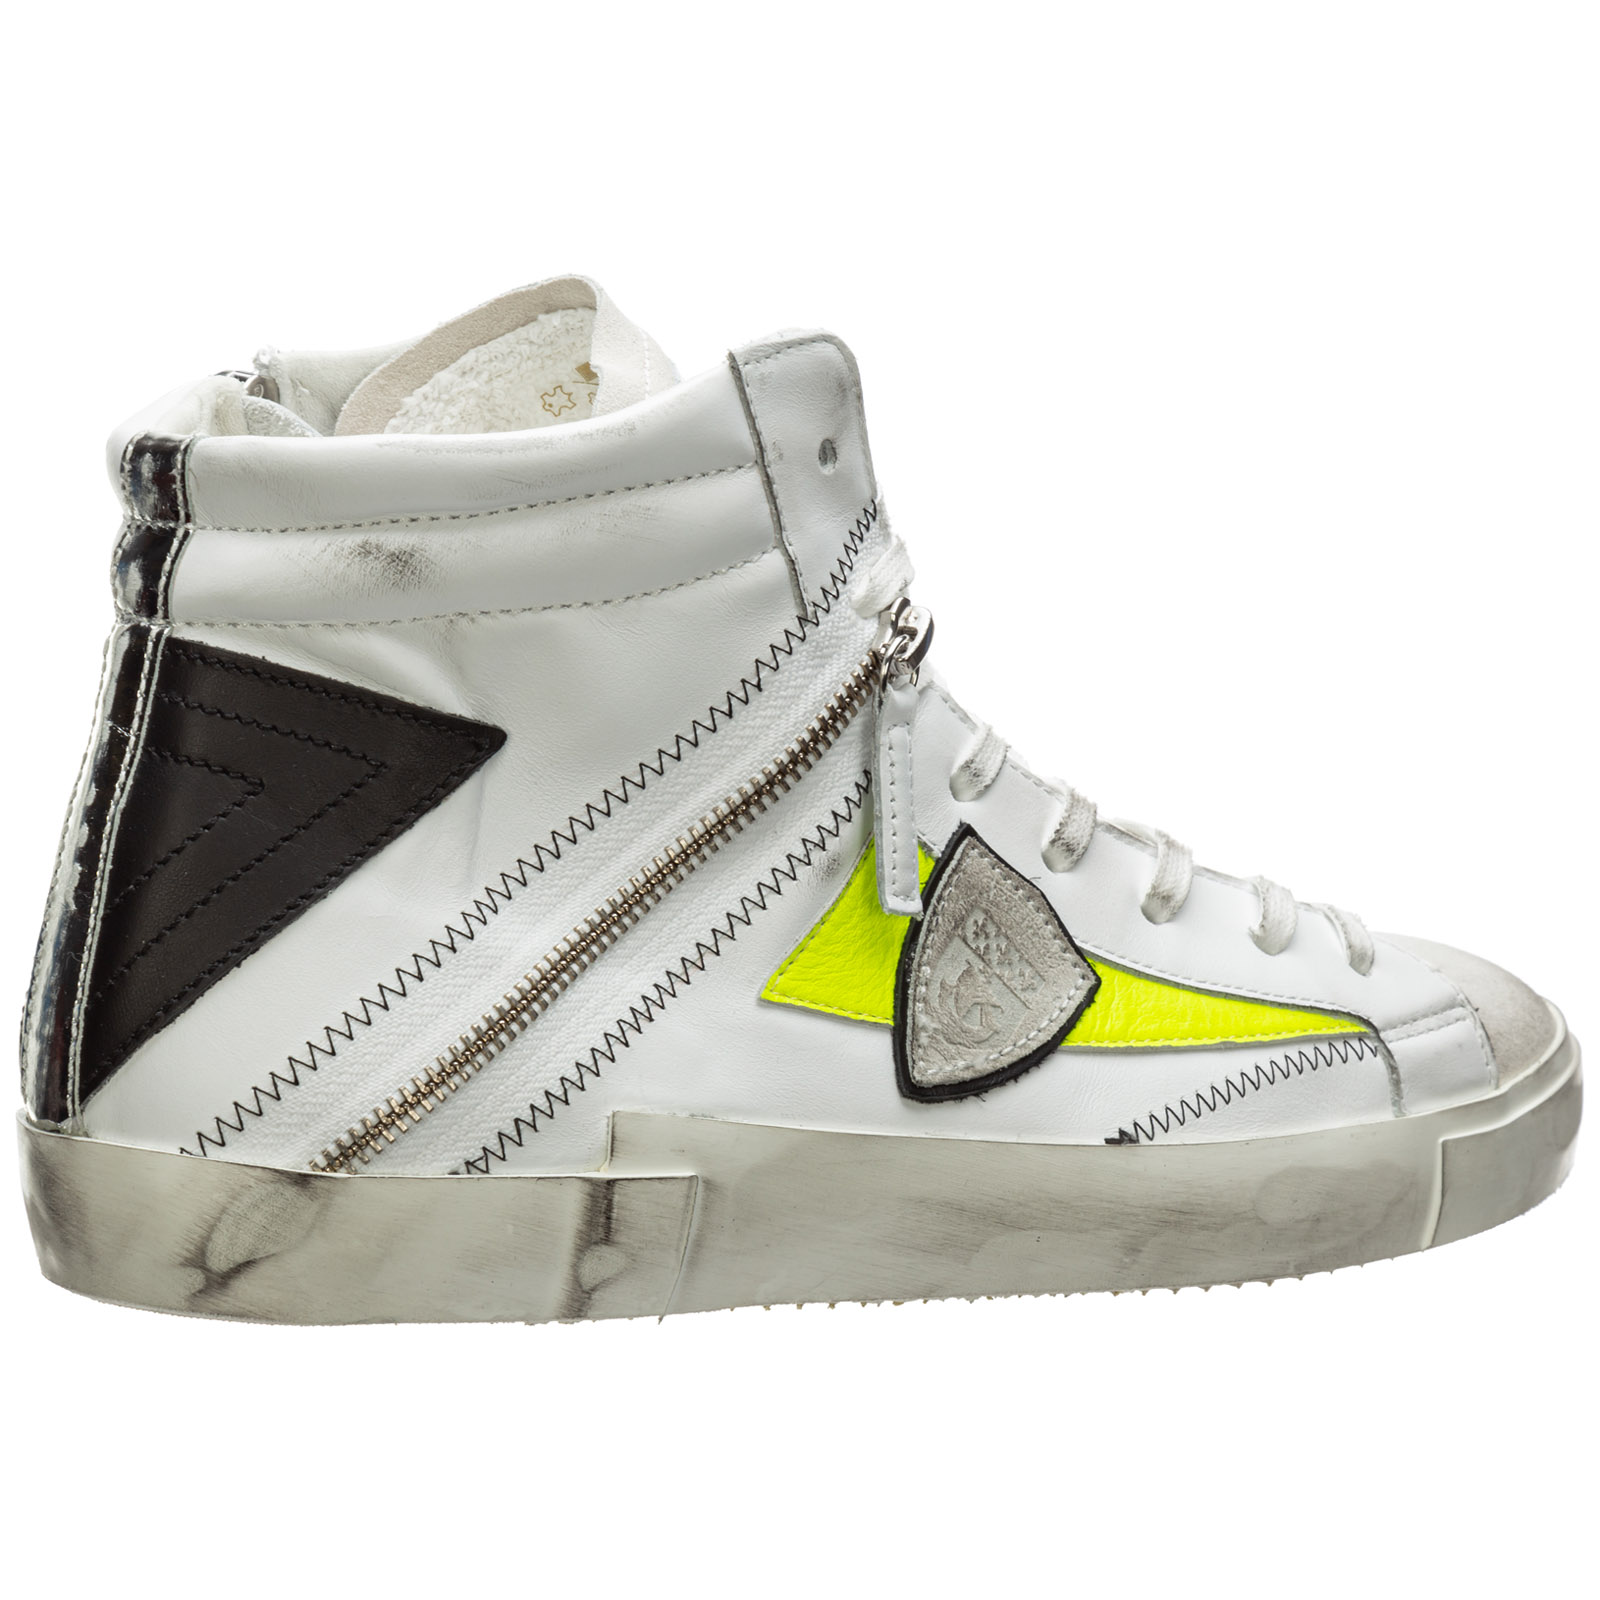 Men's shoes high top leather trainers sneakers bike